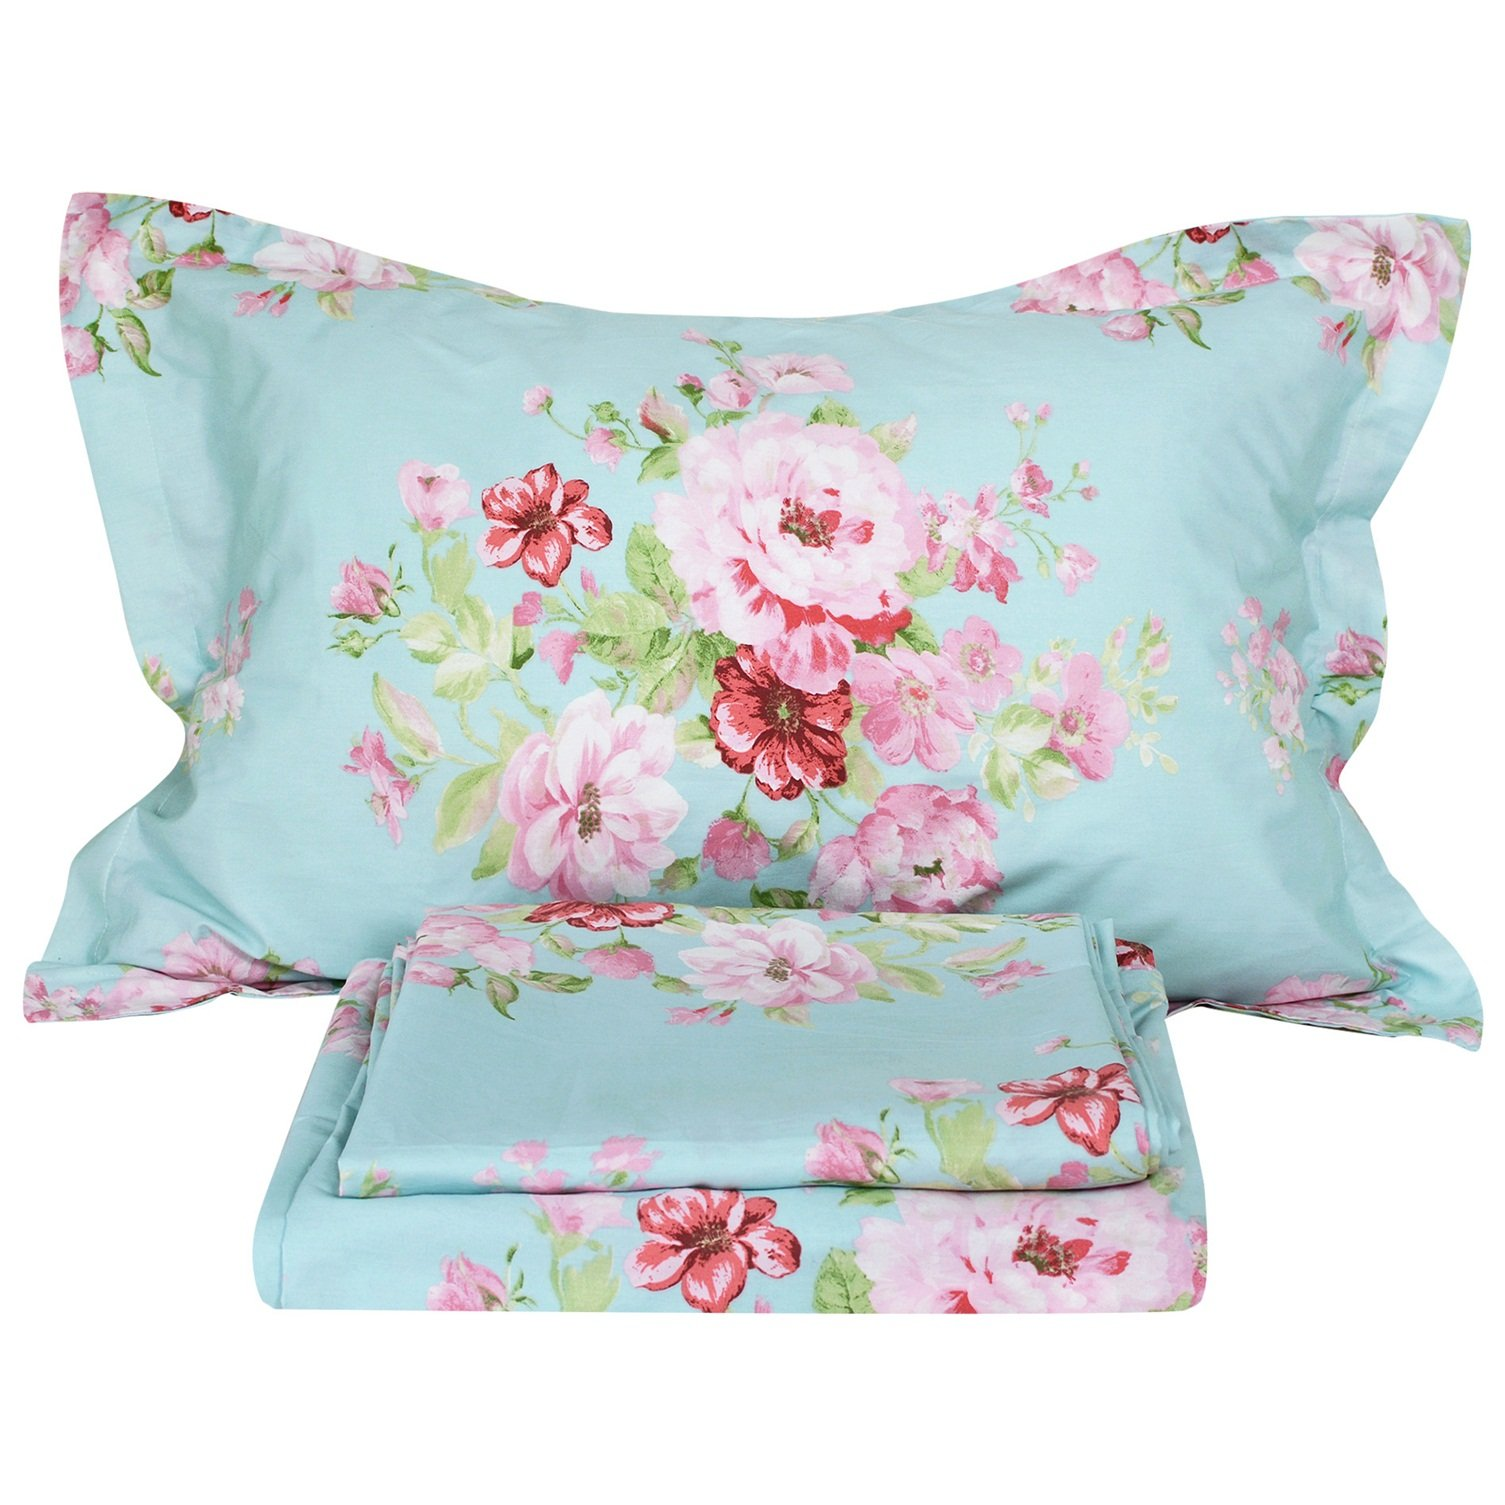 FADFAY Shabby Pink Floral Bed Sheet Set Cotton Deep Pocket Sheets 4-Piece King Size by FADFAY